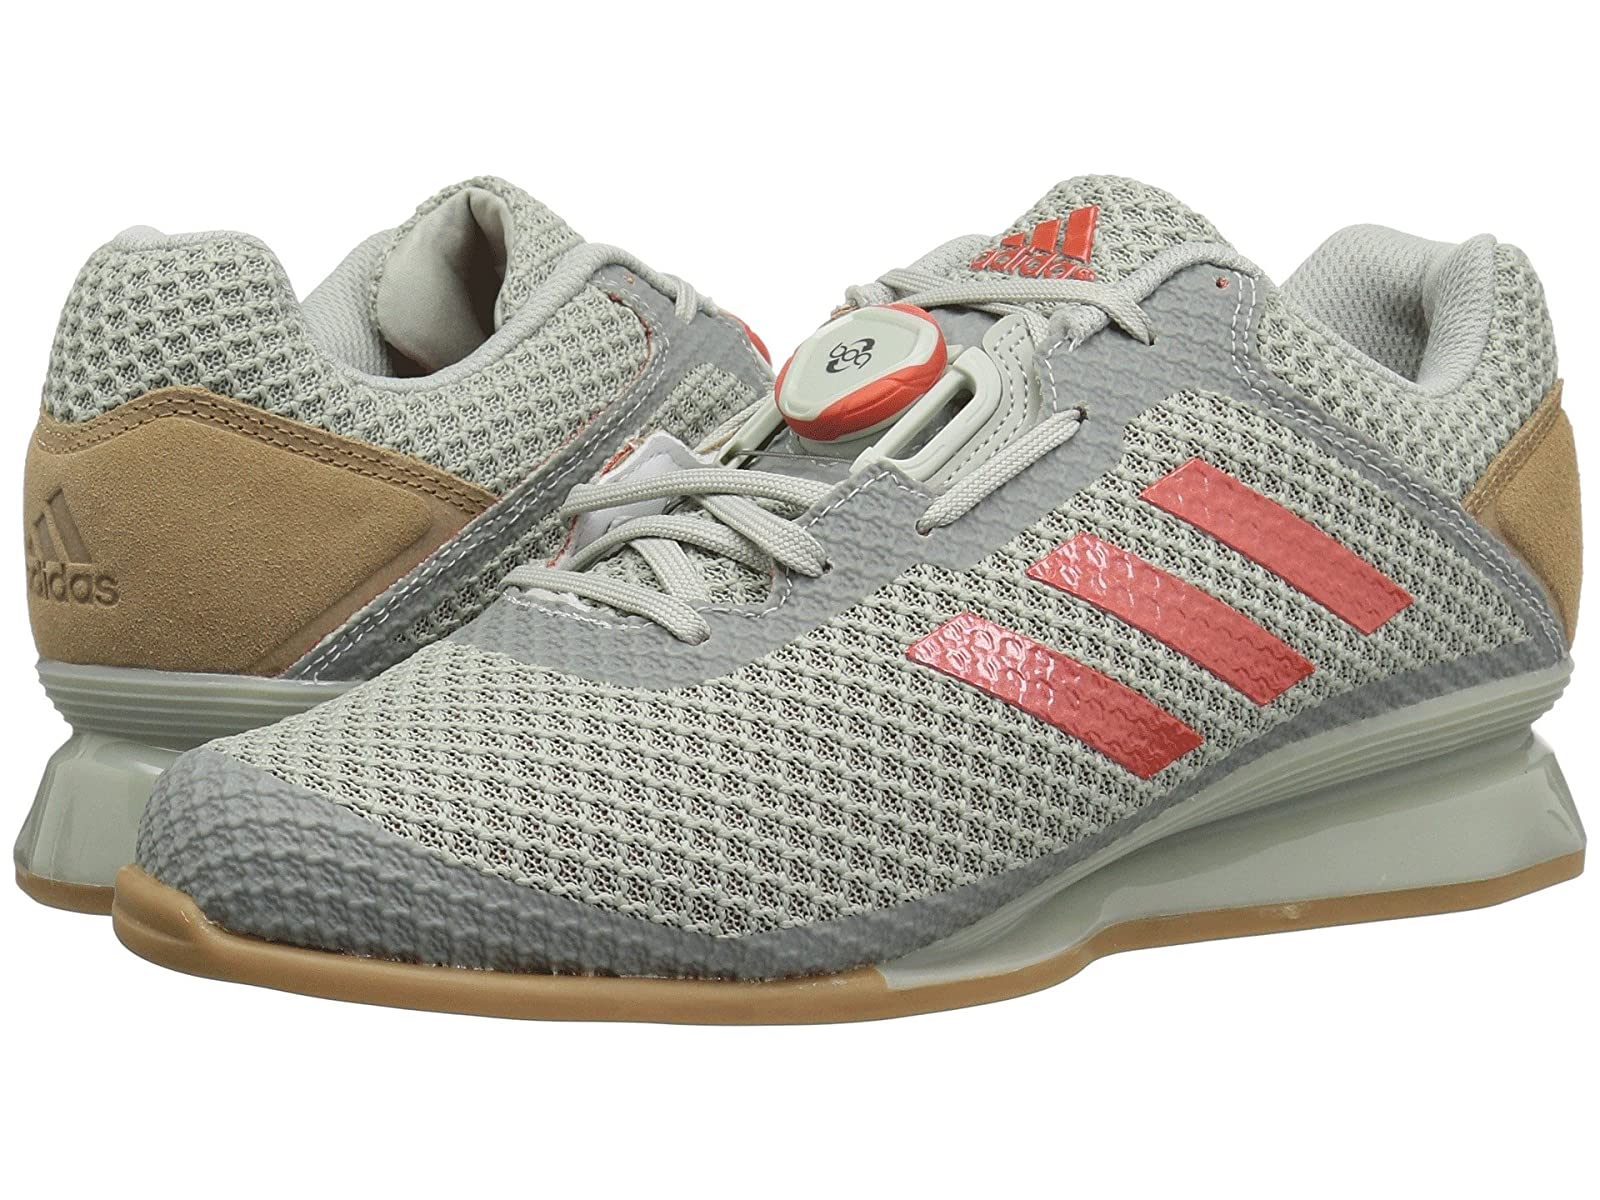 adidas Leistung 16 IIAtmospheric grades have affordable shoes